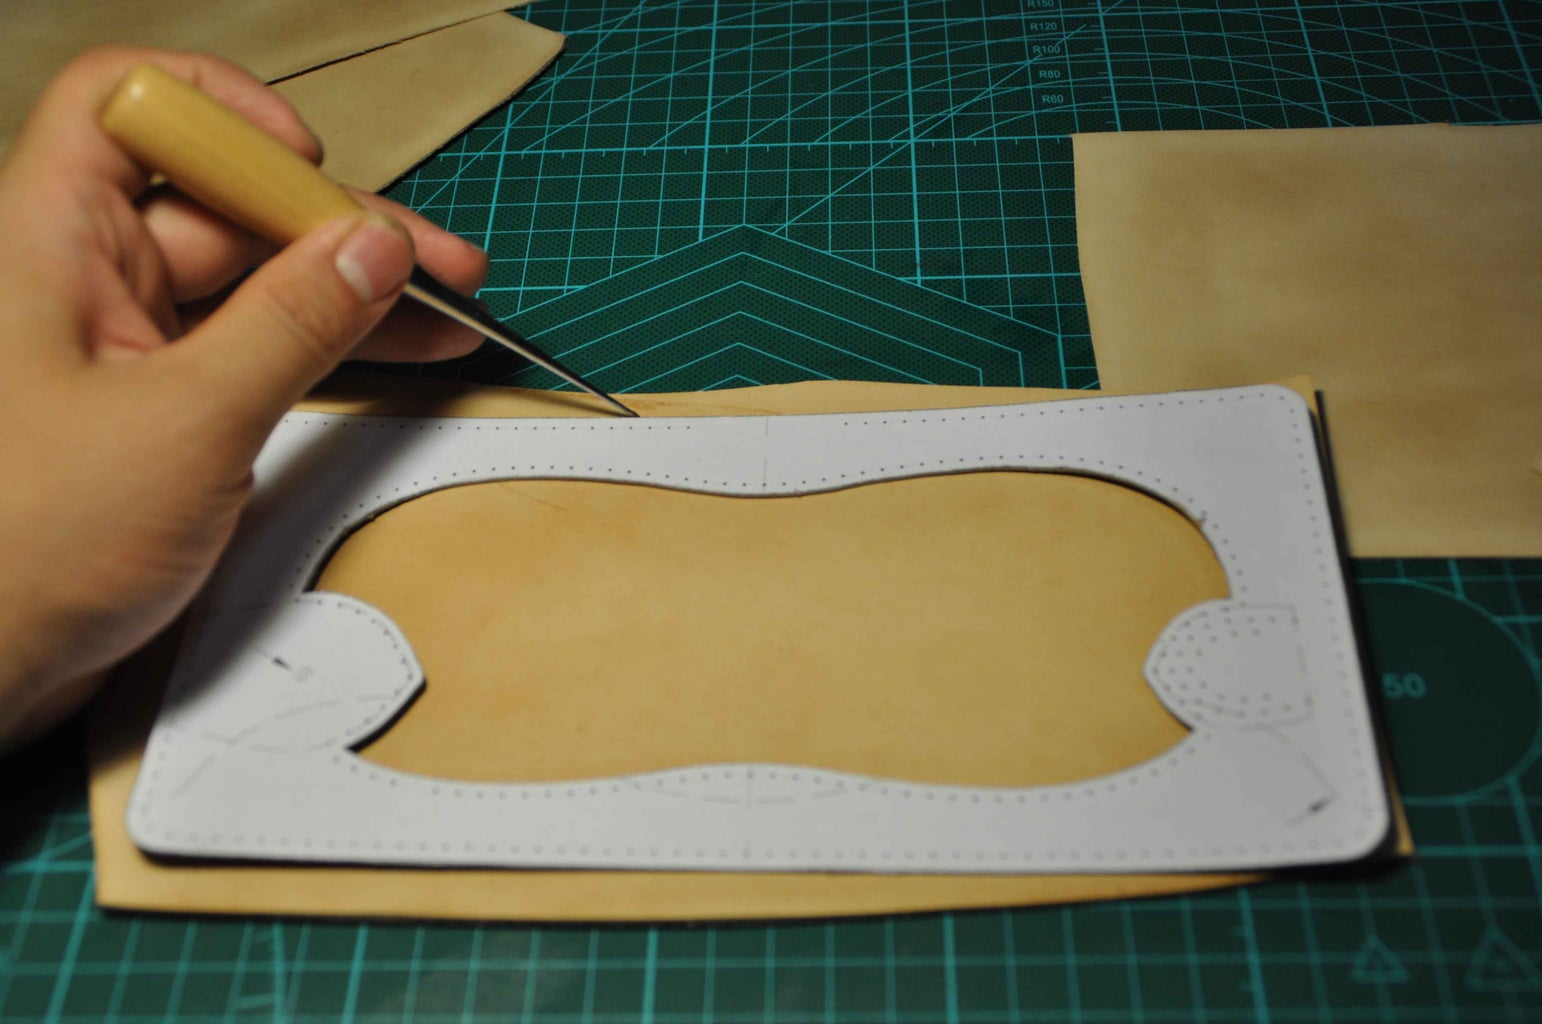 After the Steps Above We Can Begin to Make. First Draw Outlines According to the Patterns on Leather..